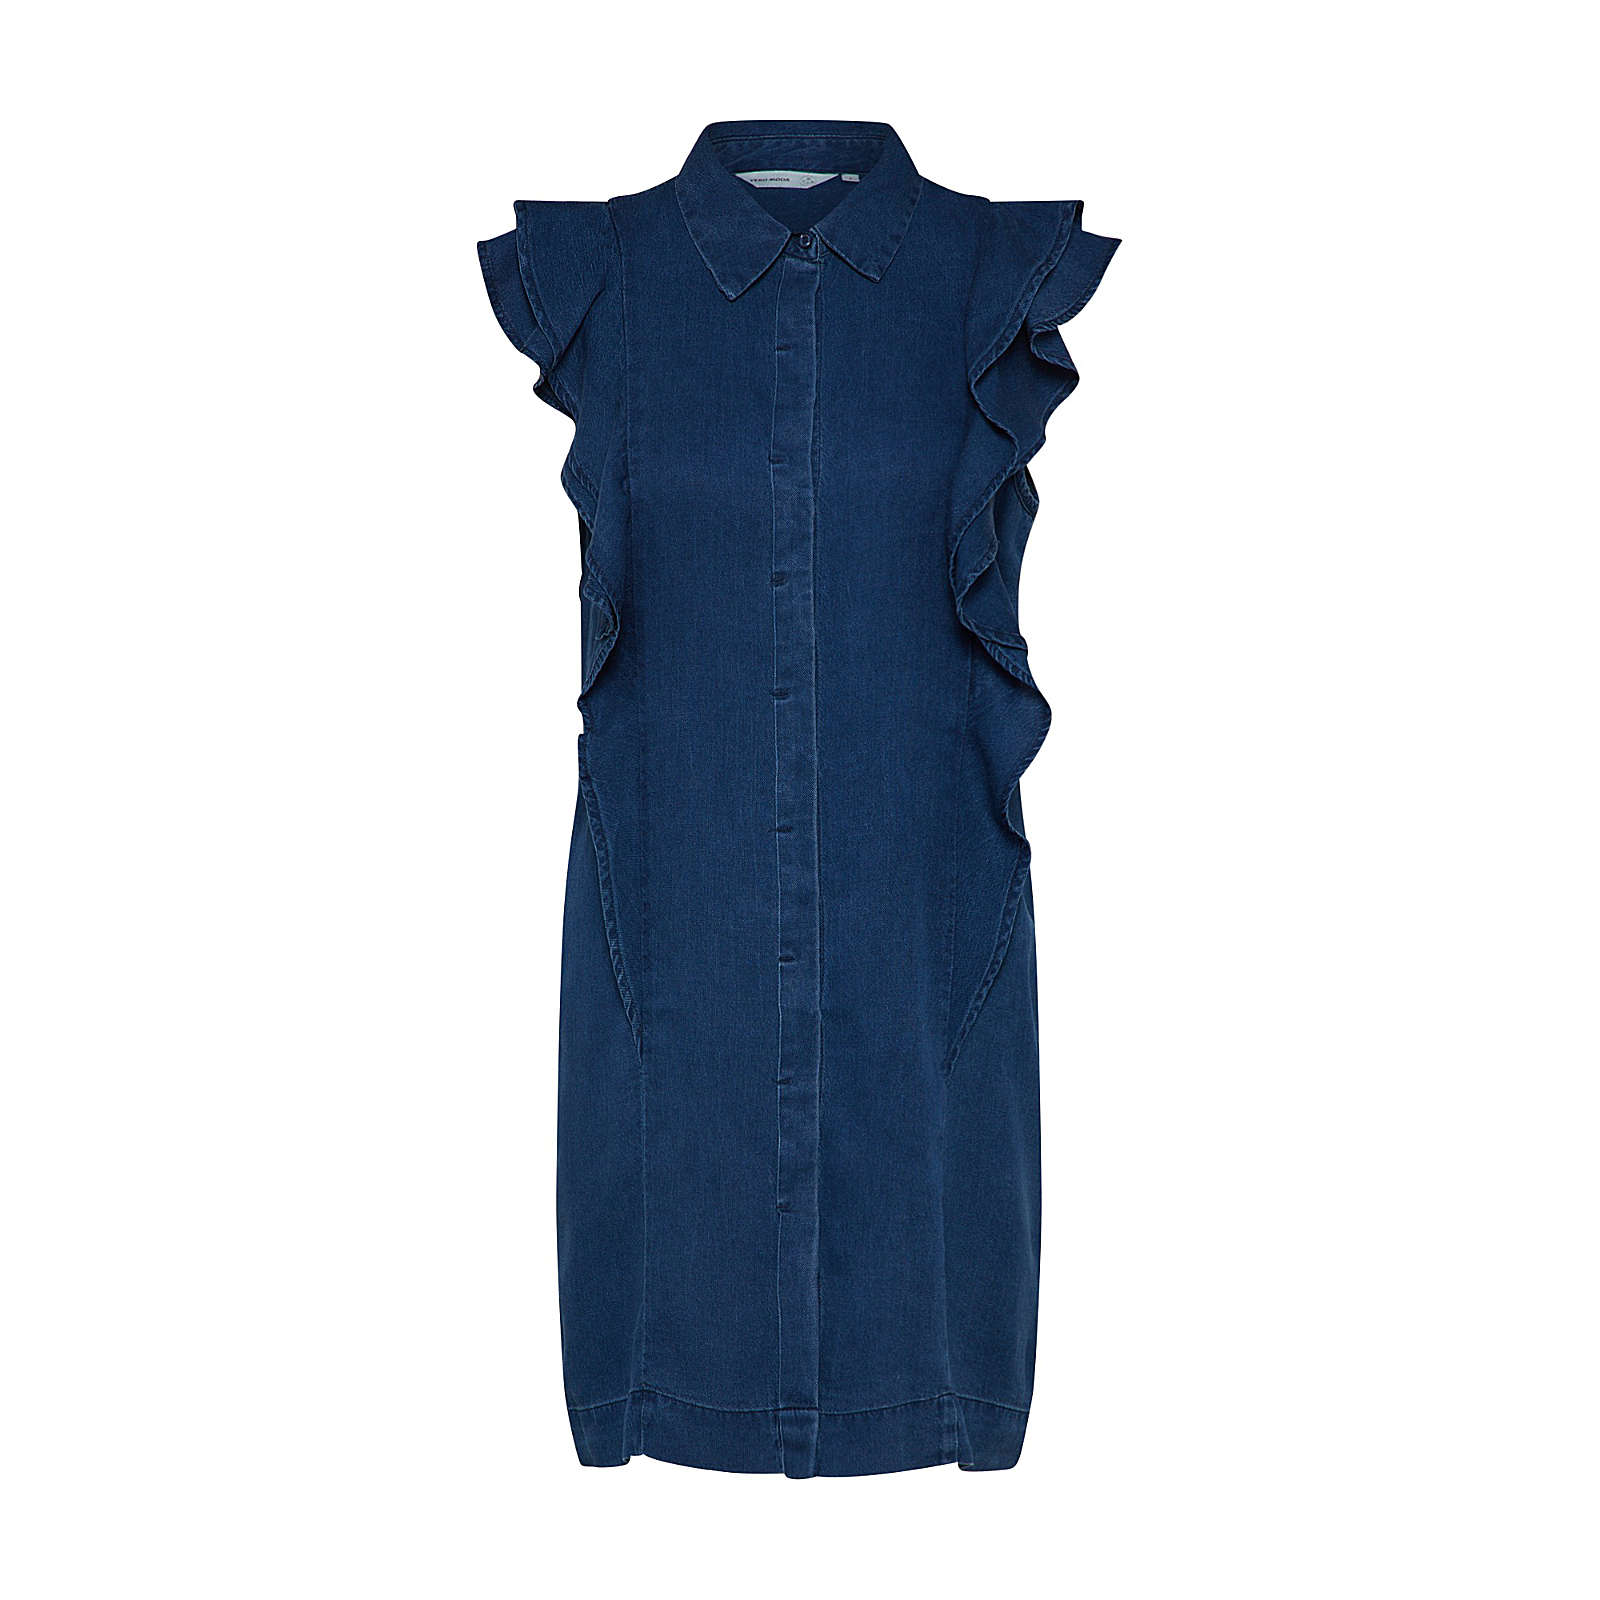 VERO MODA Kleid Jeanskleider blue denim Damen Gr. 34